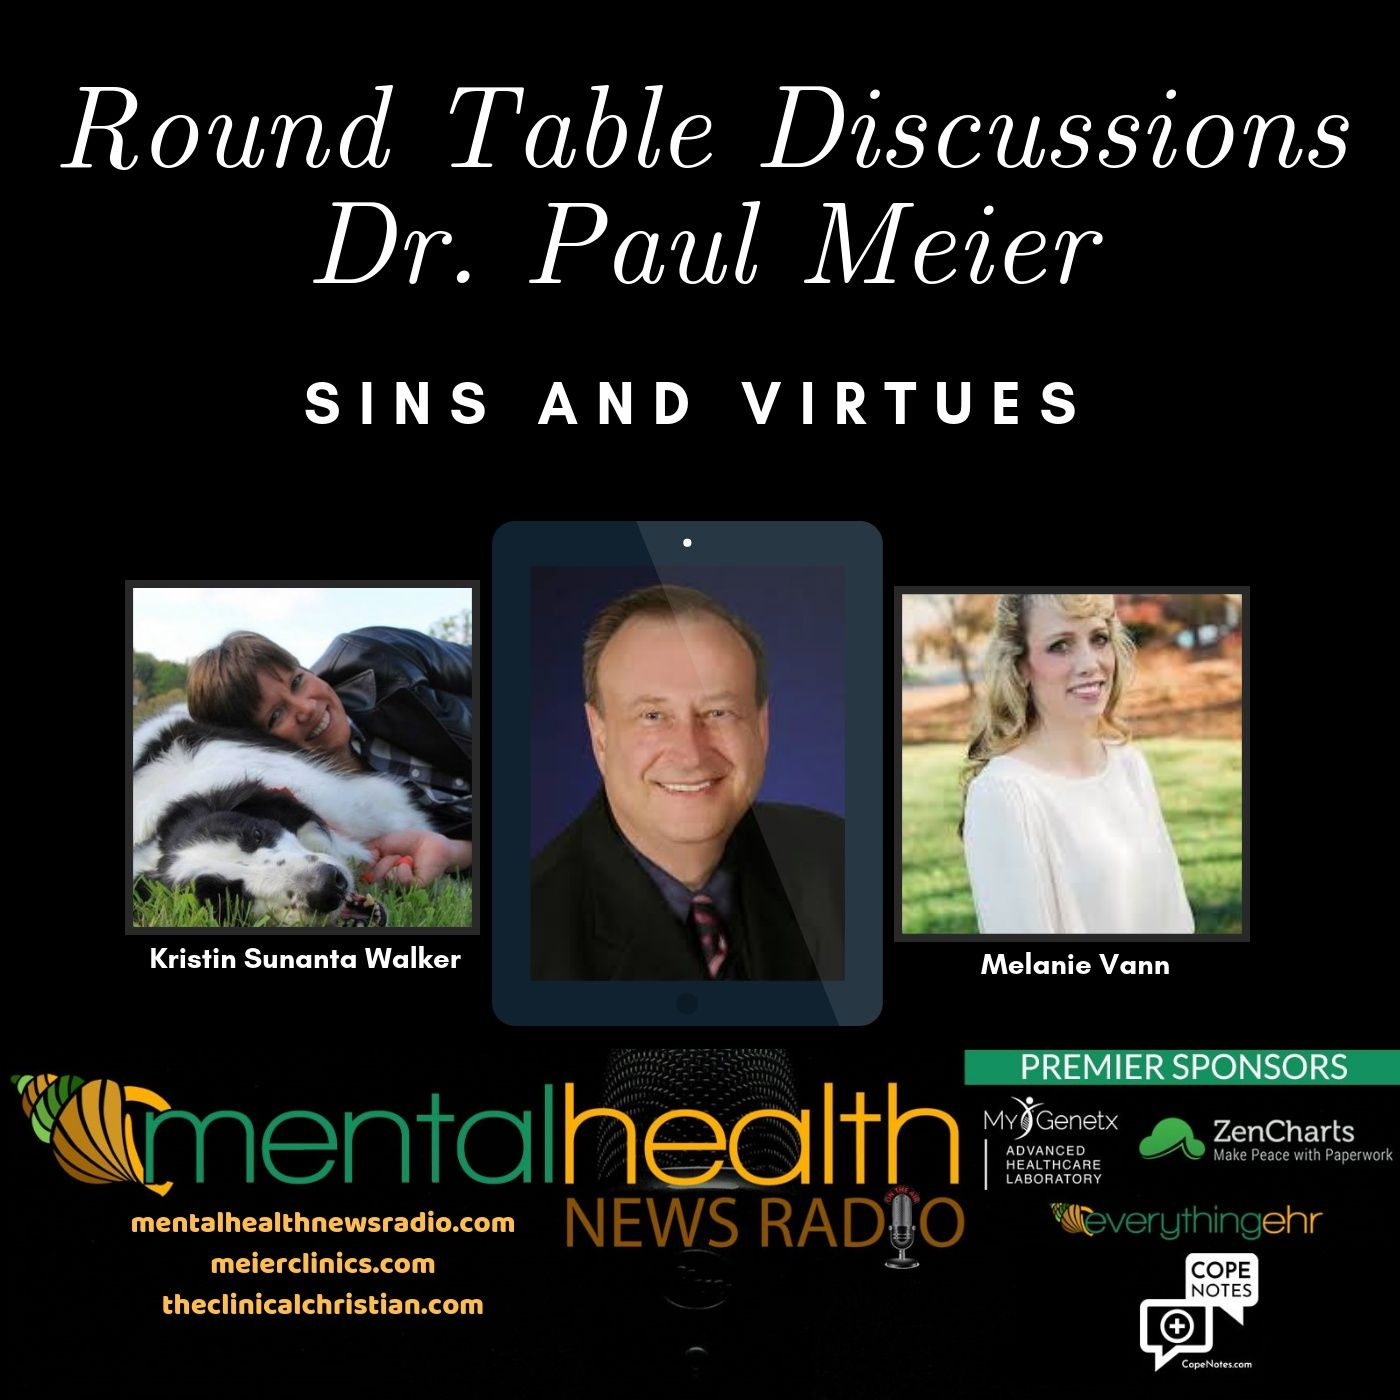 Mental Health News Radio - Round Table Discussions with Dr. Paul Meier: Sins and Virtues